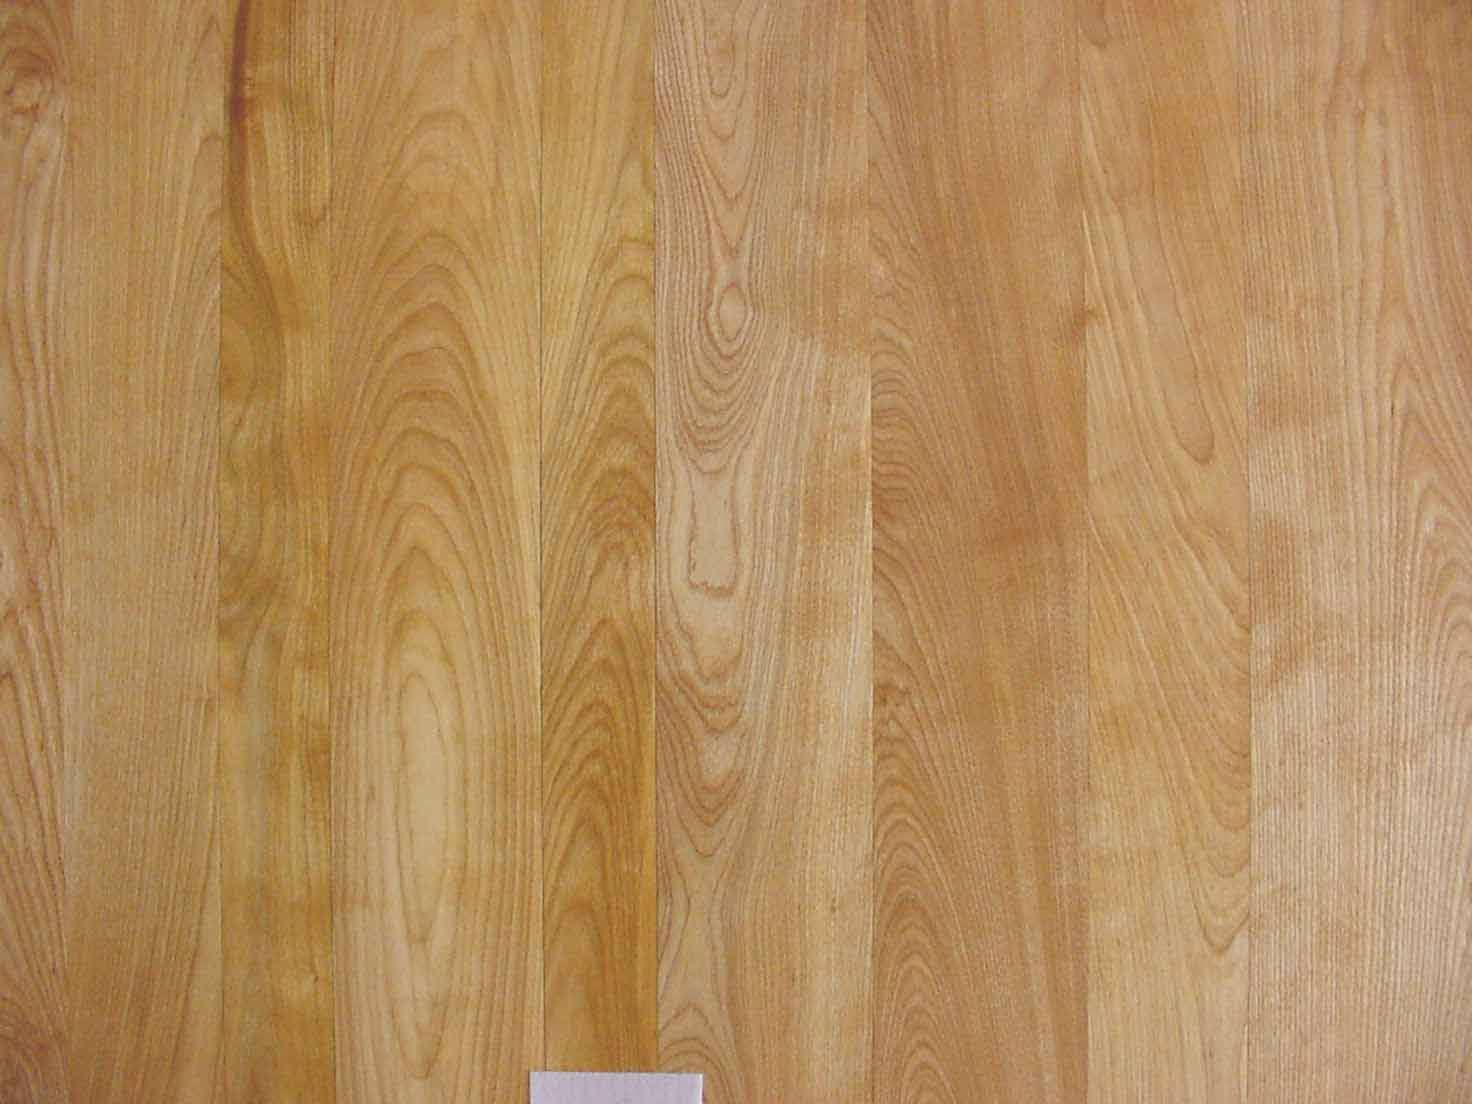 Timberknee ltd yellow birch flooring gallery for Birch hardwood flooring